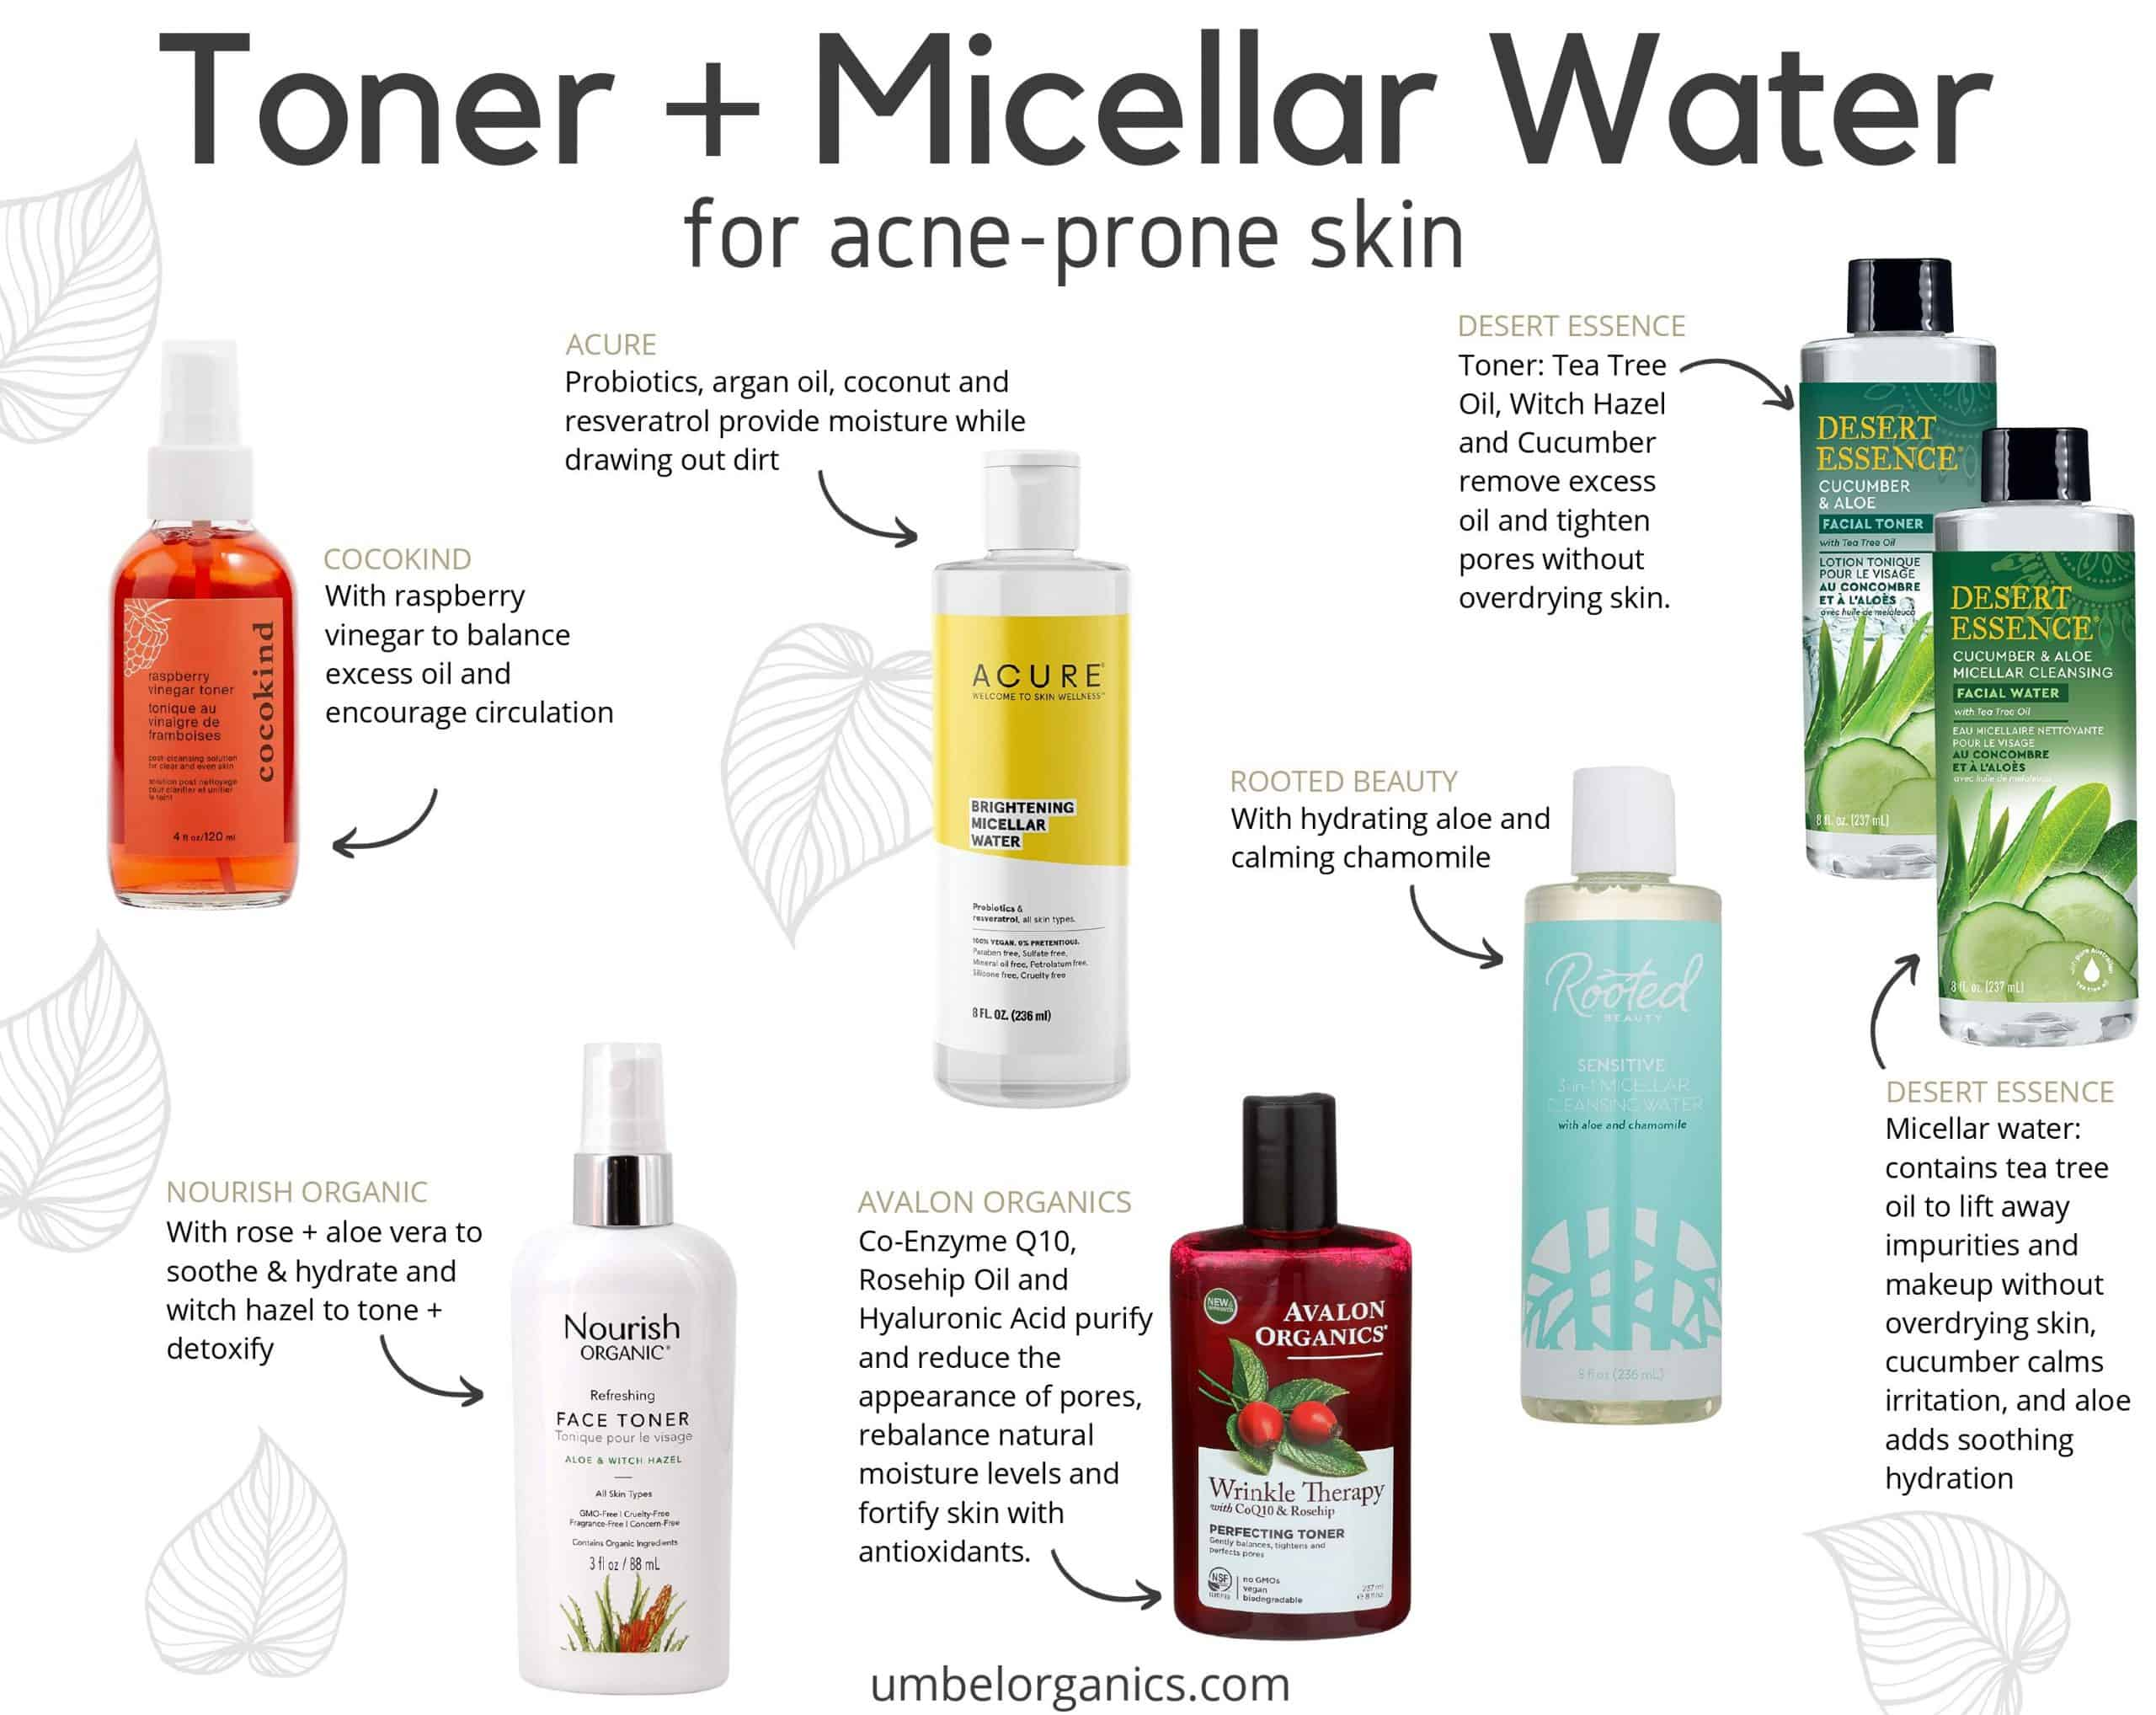 6 brands of affordable, clean toner and micellar water for acne-prone skin